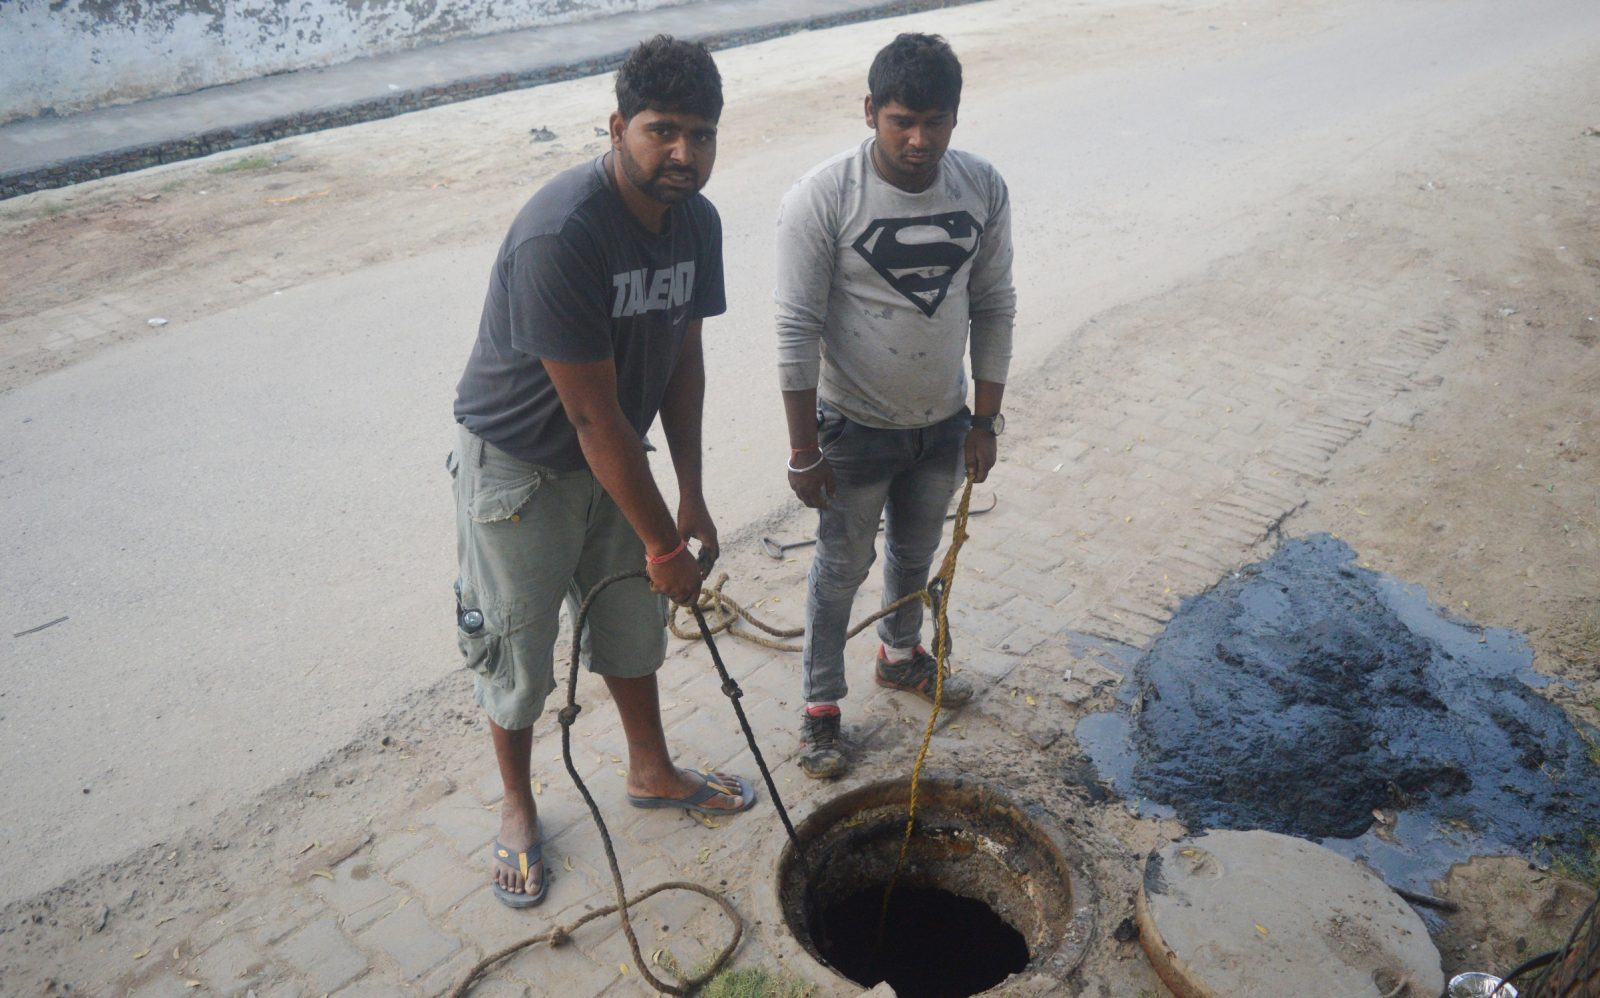 Sanitation workers in India prepare a to clean a sewer.